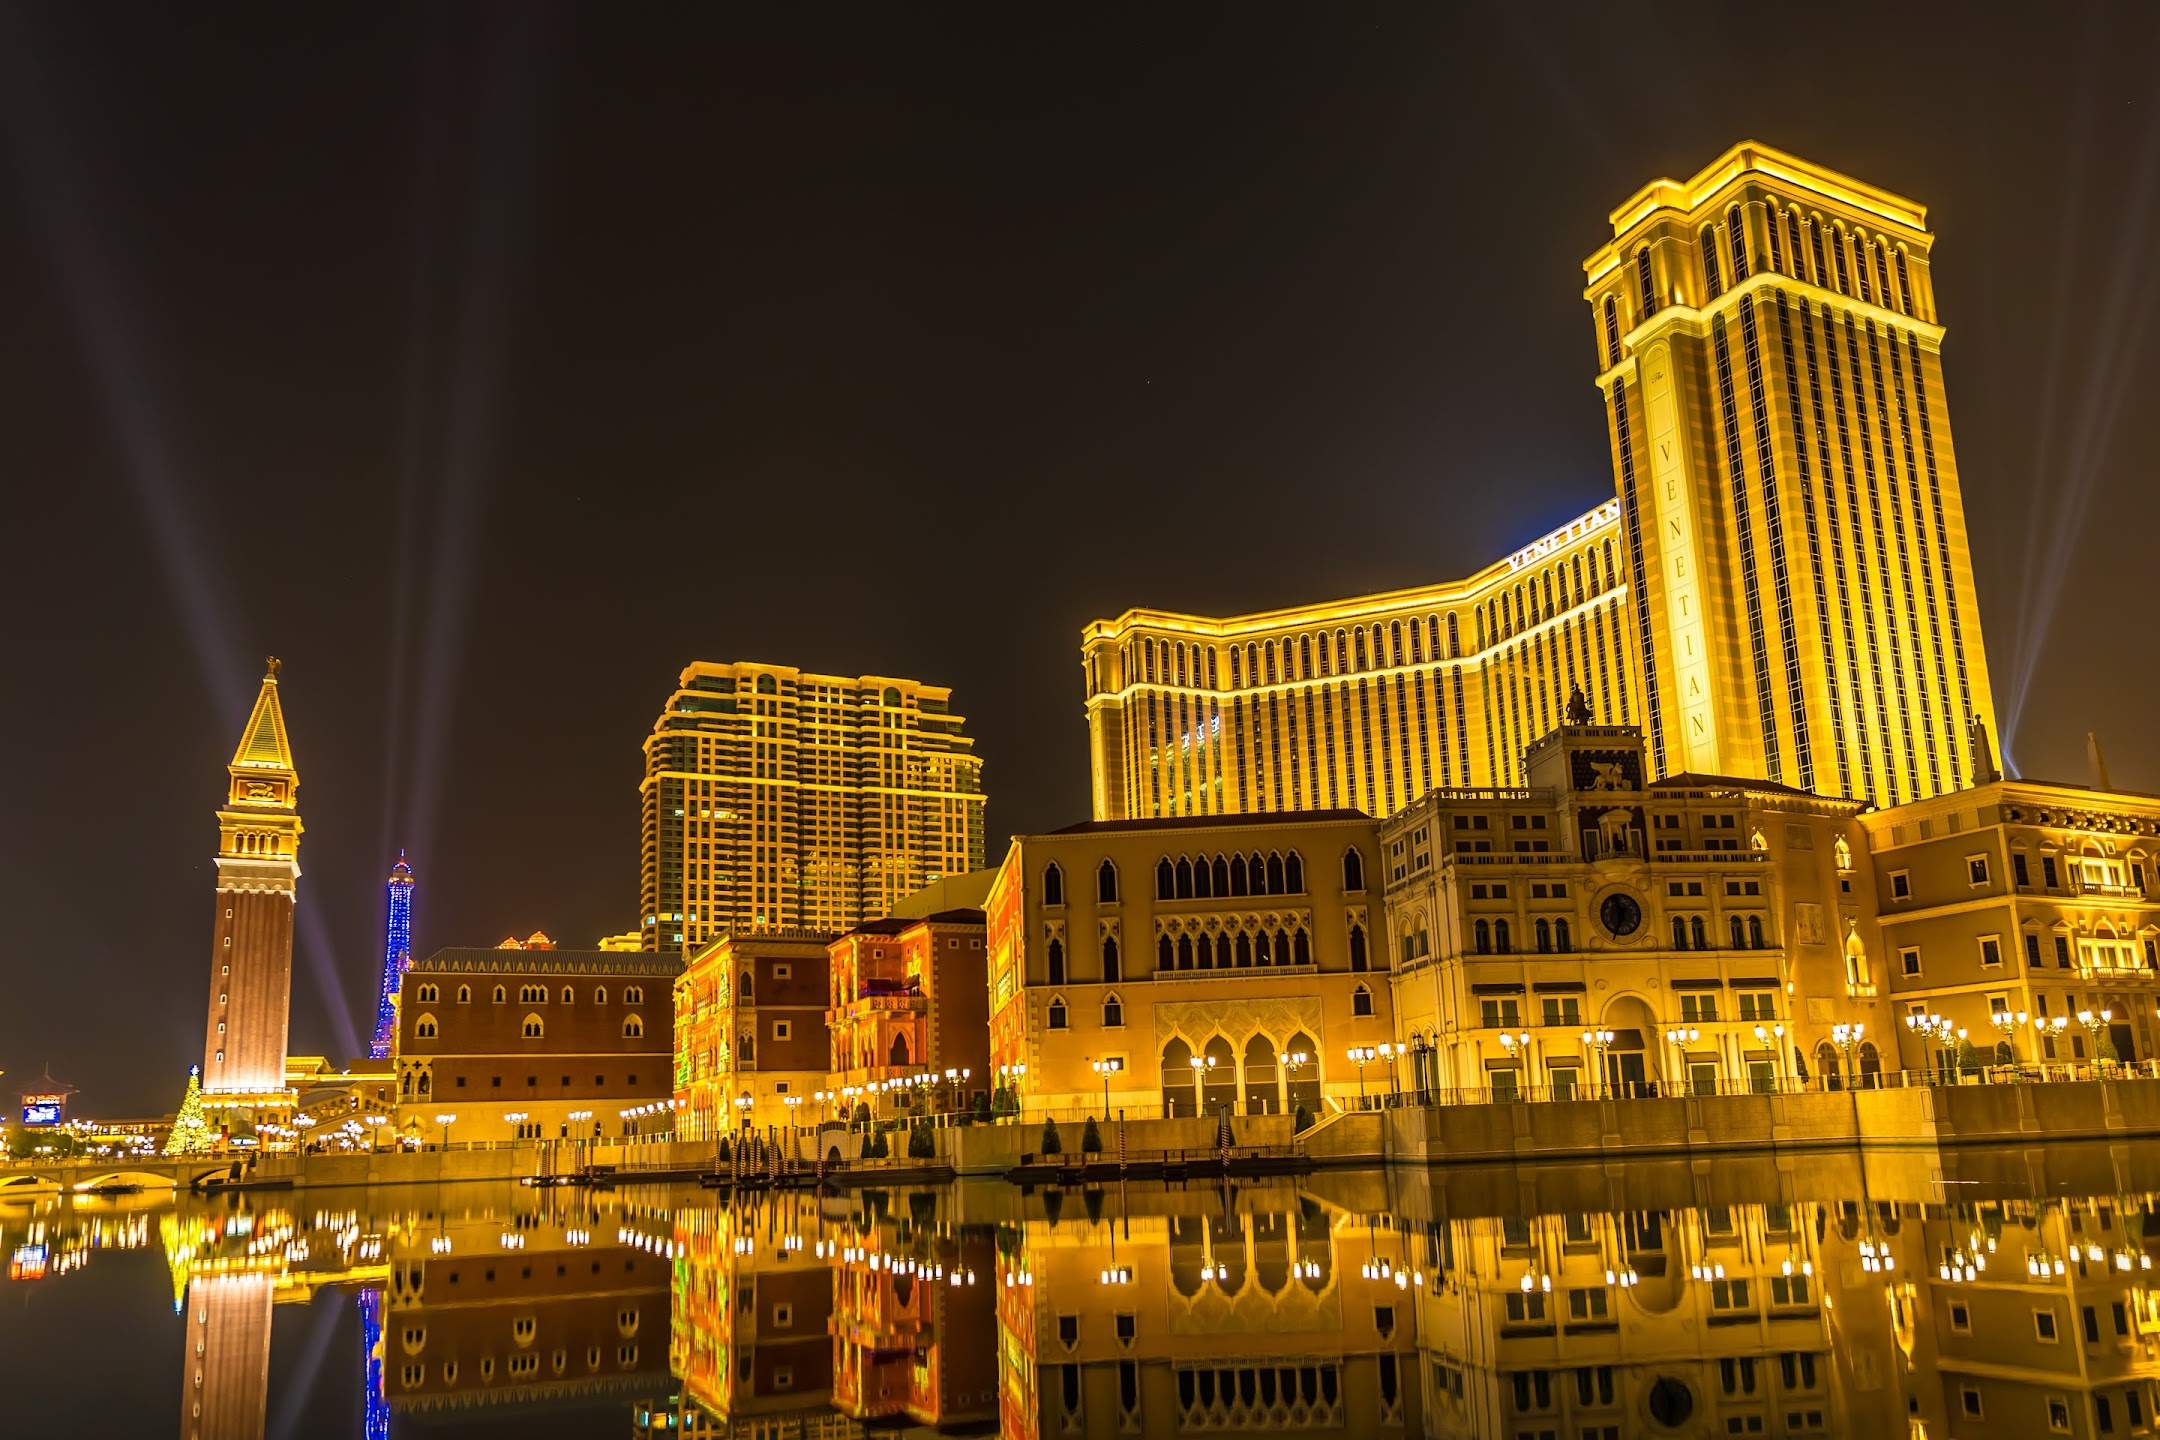 The Venetian Macao night2